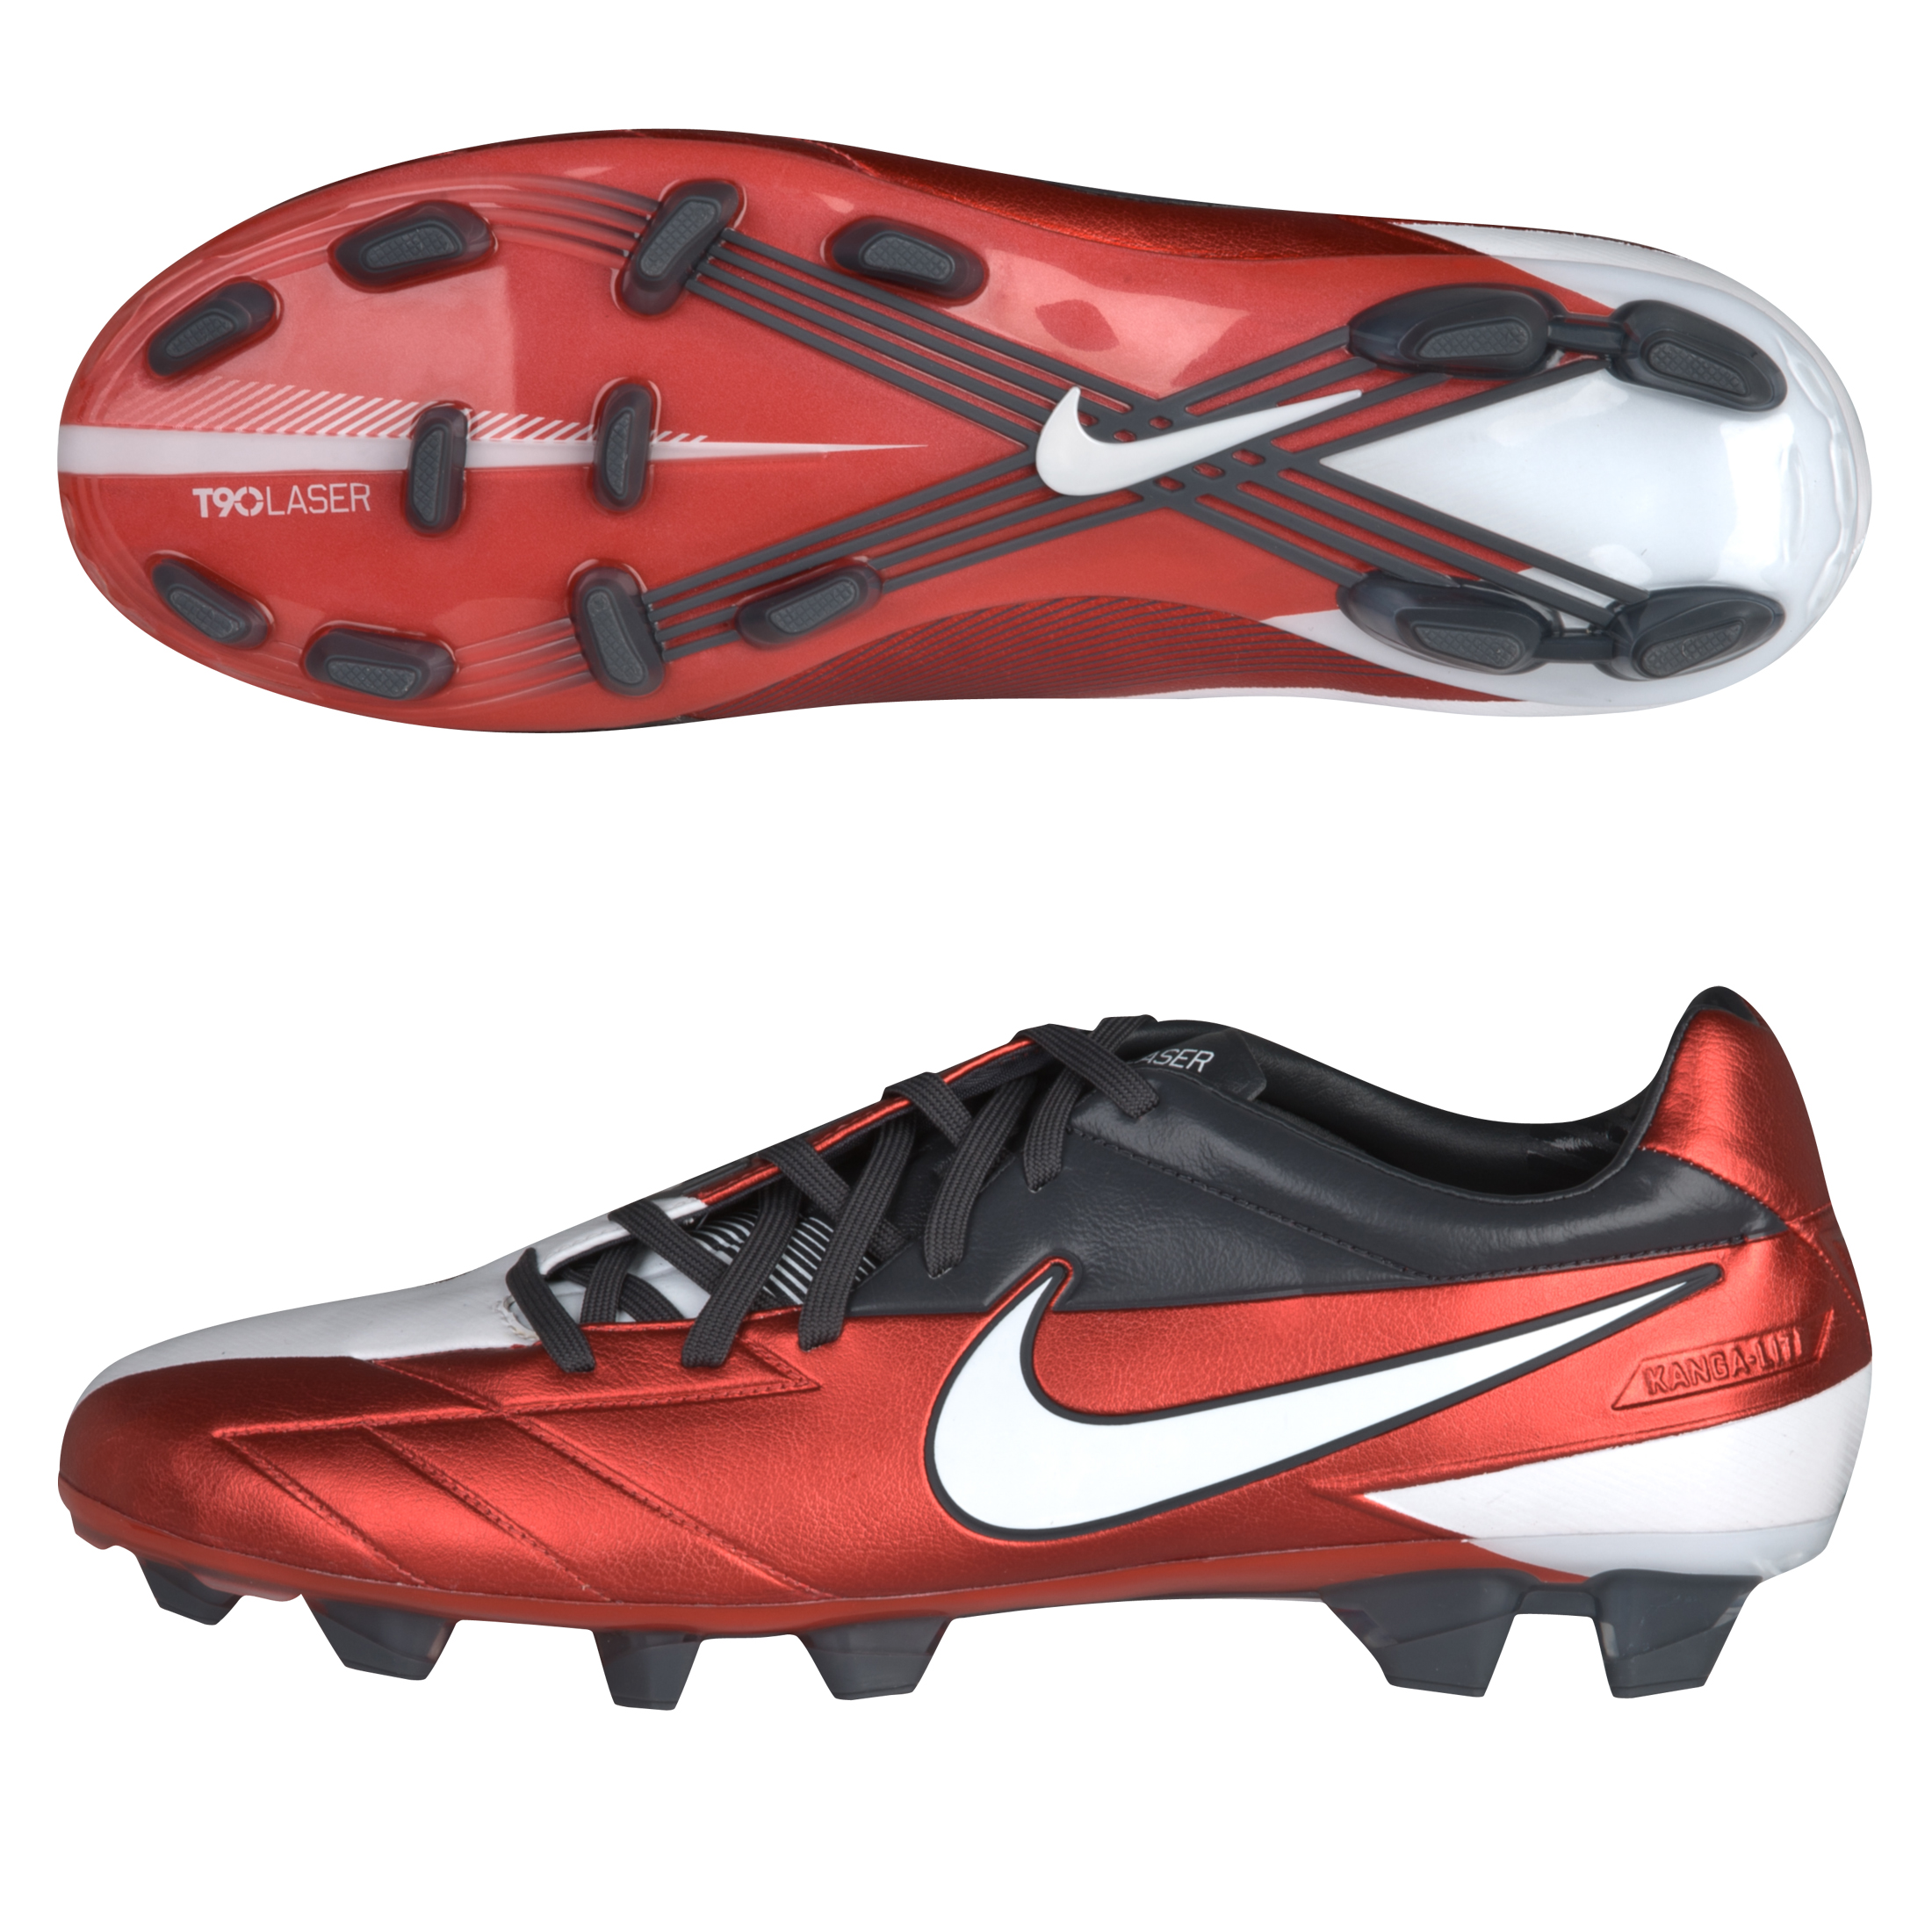 Nike T90 Laser IV KL-Firm Ground Challenge Red/White/Anthracite